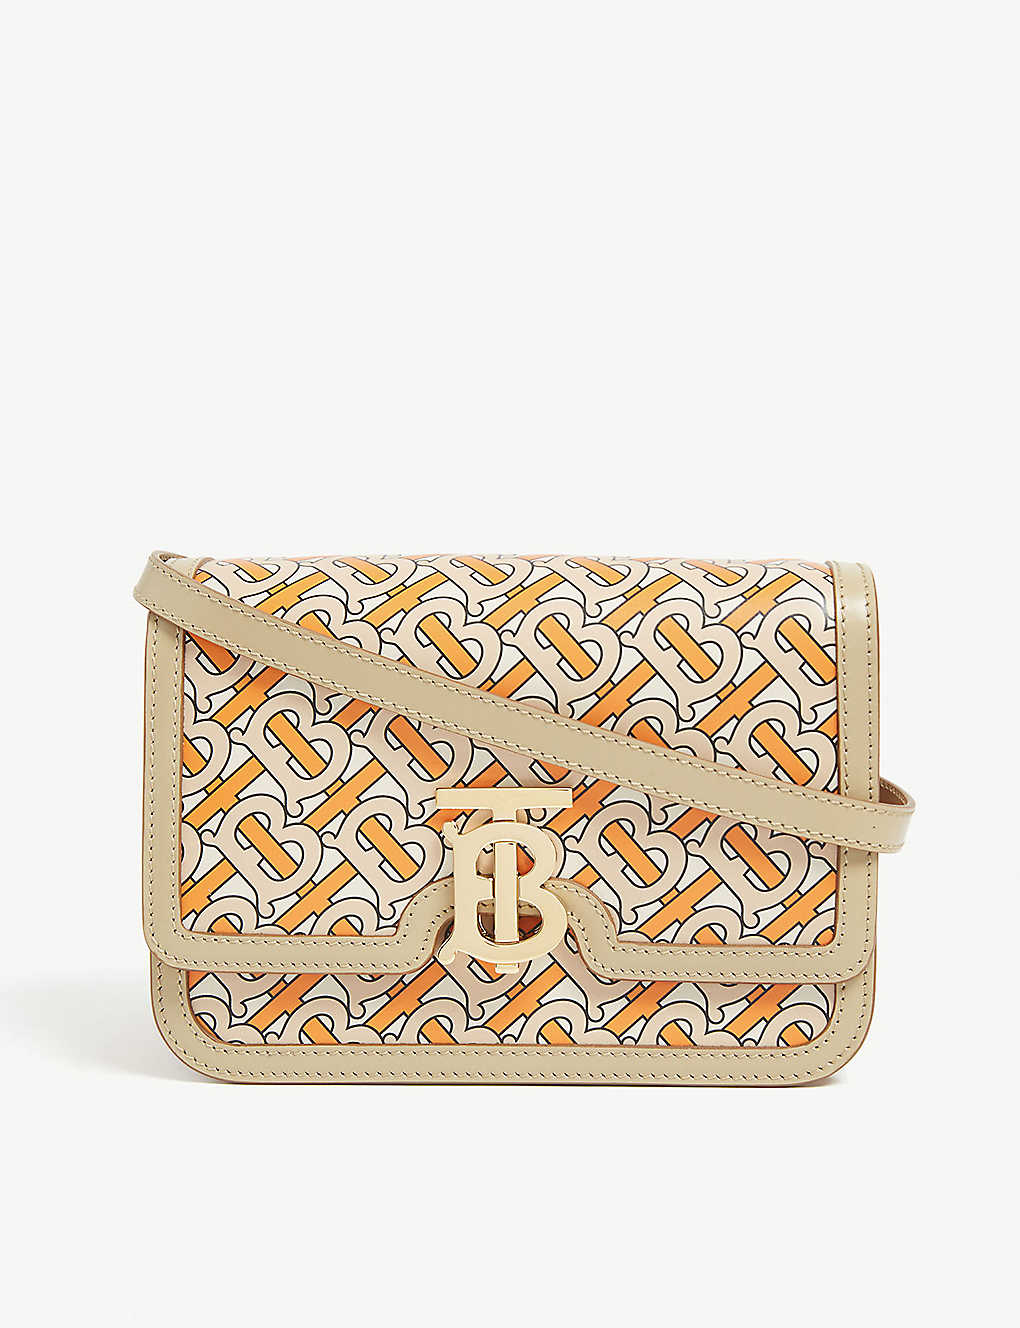 TB Monogram Shoulder Bag